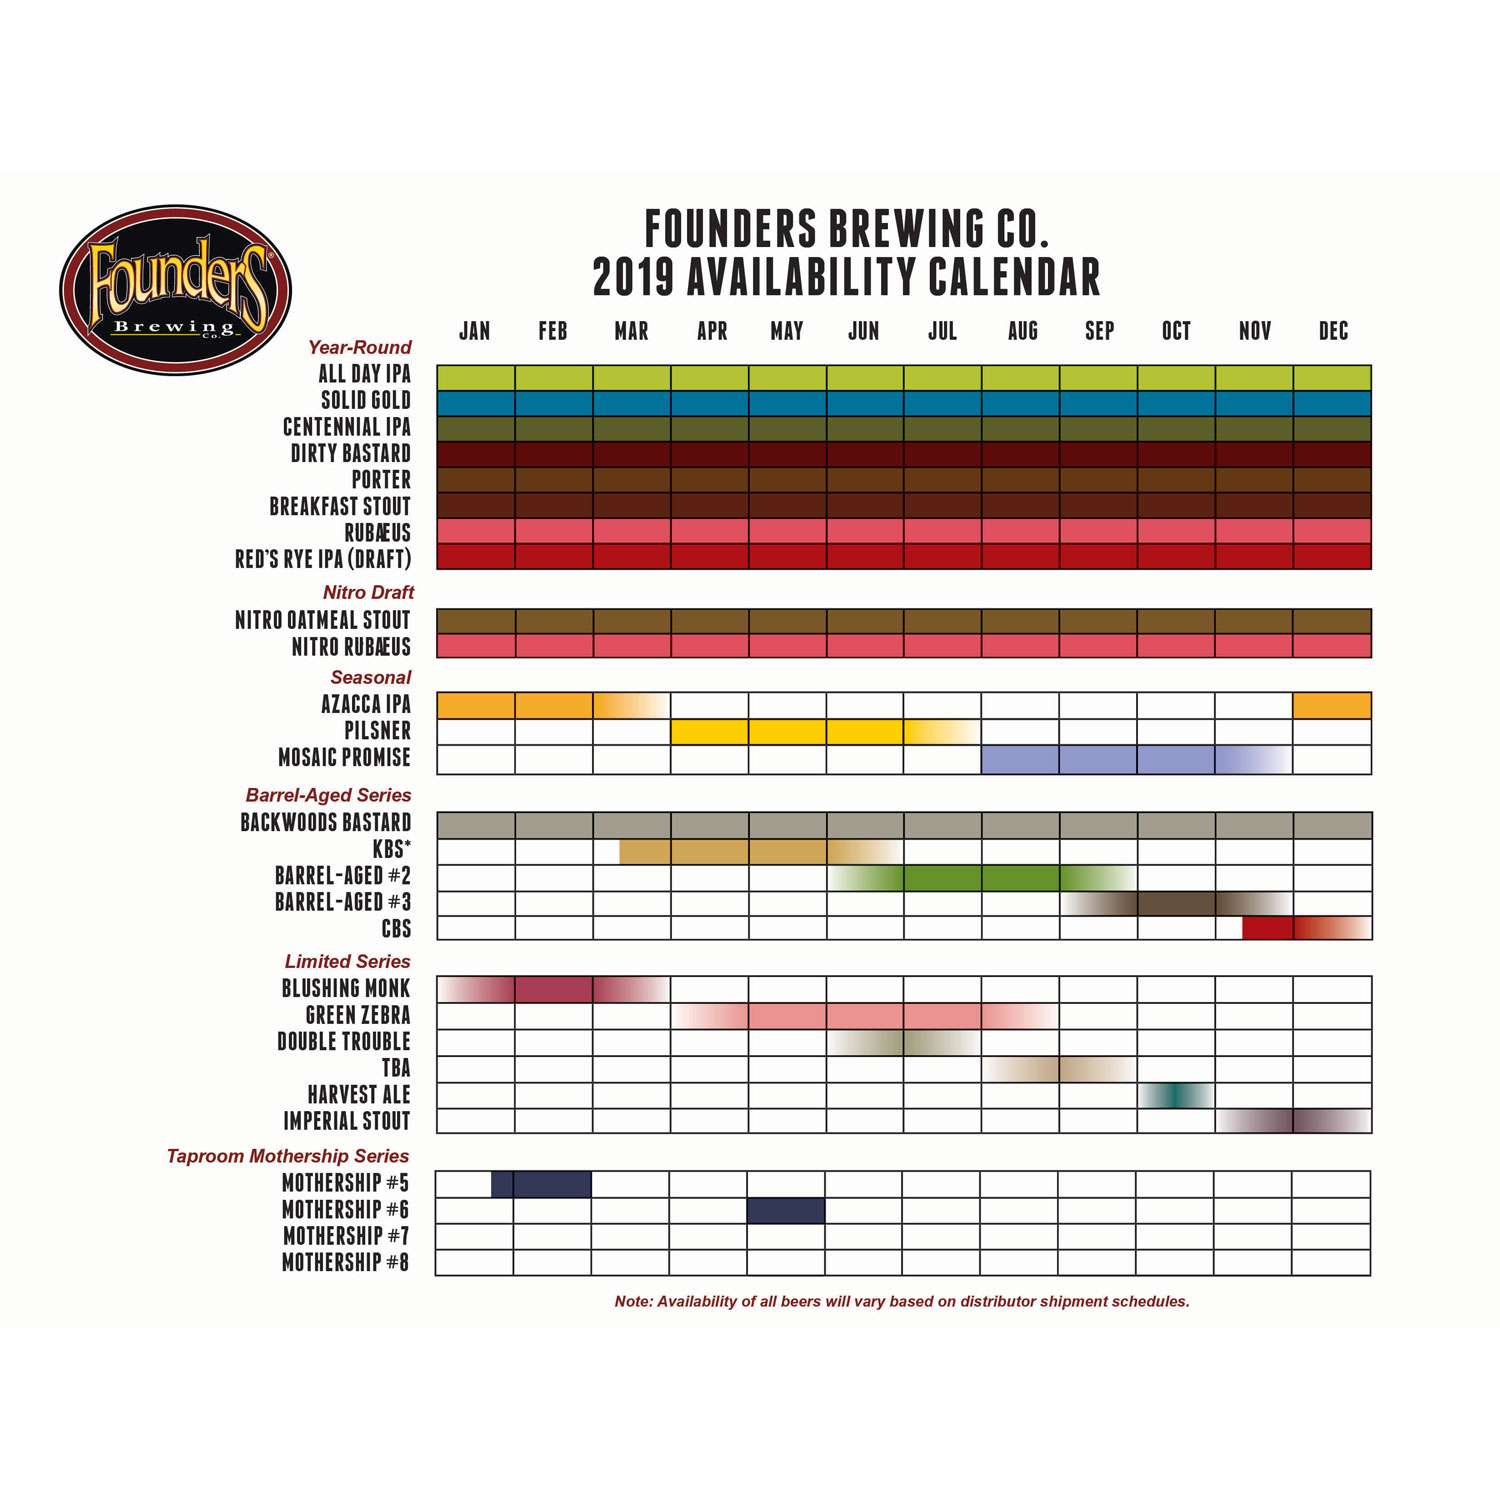 Founders 2019 Availability Calendar